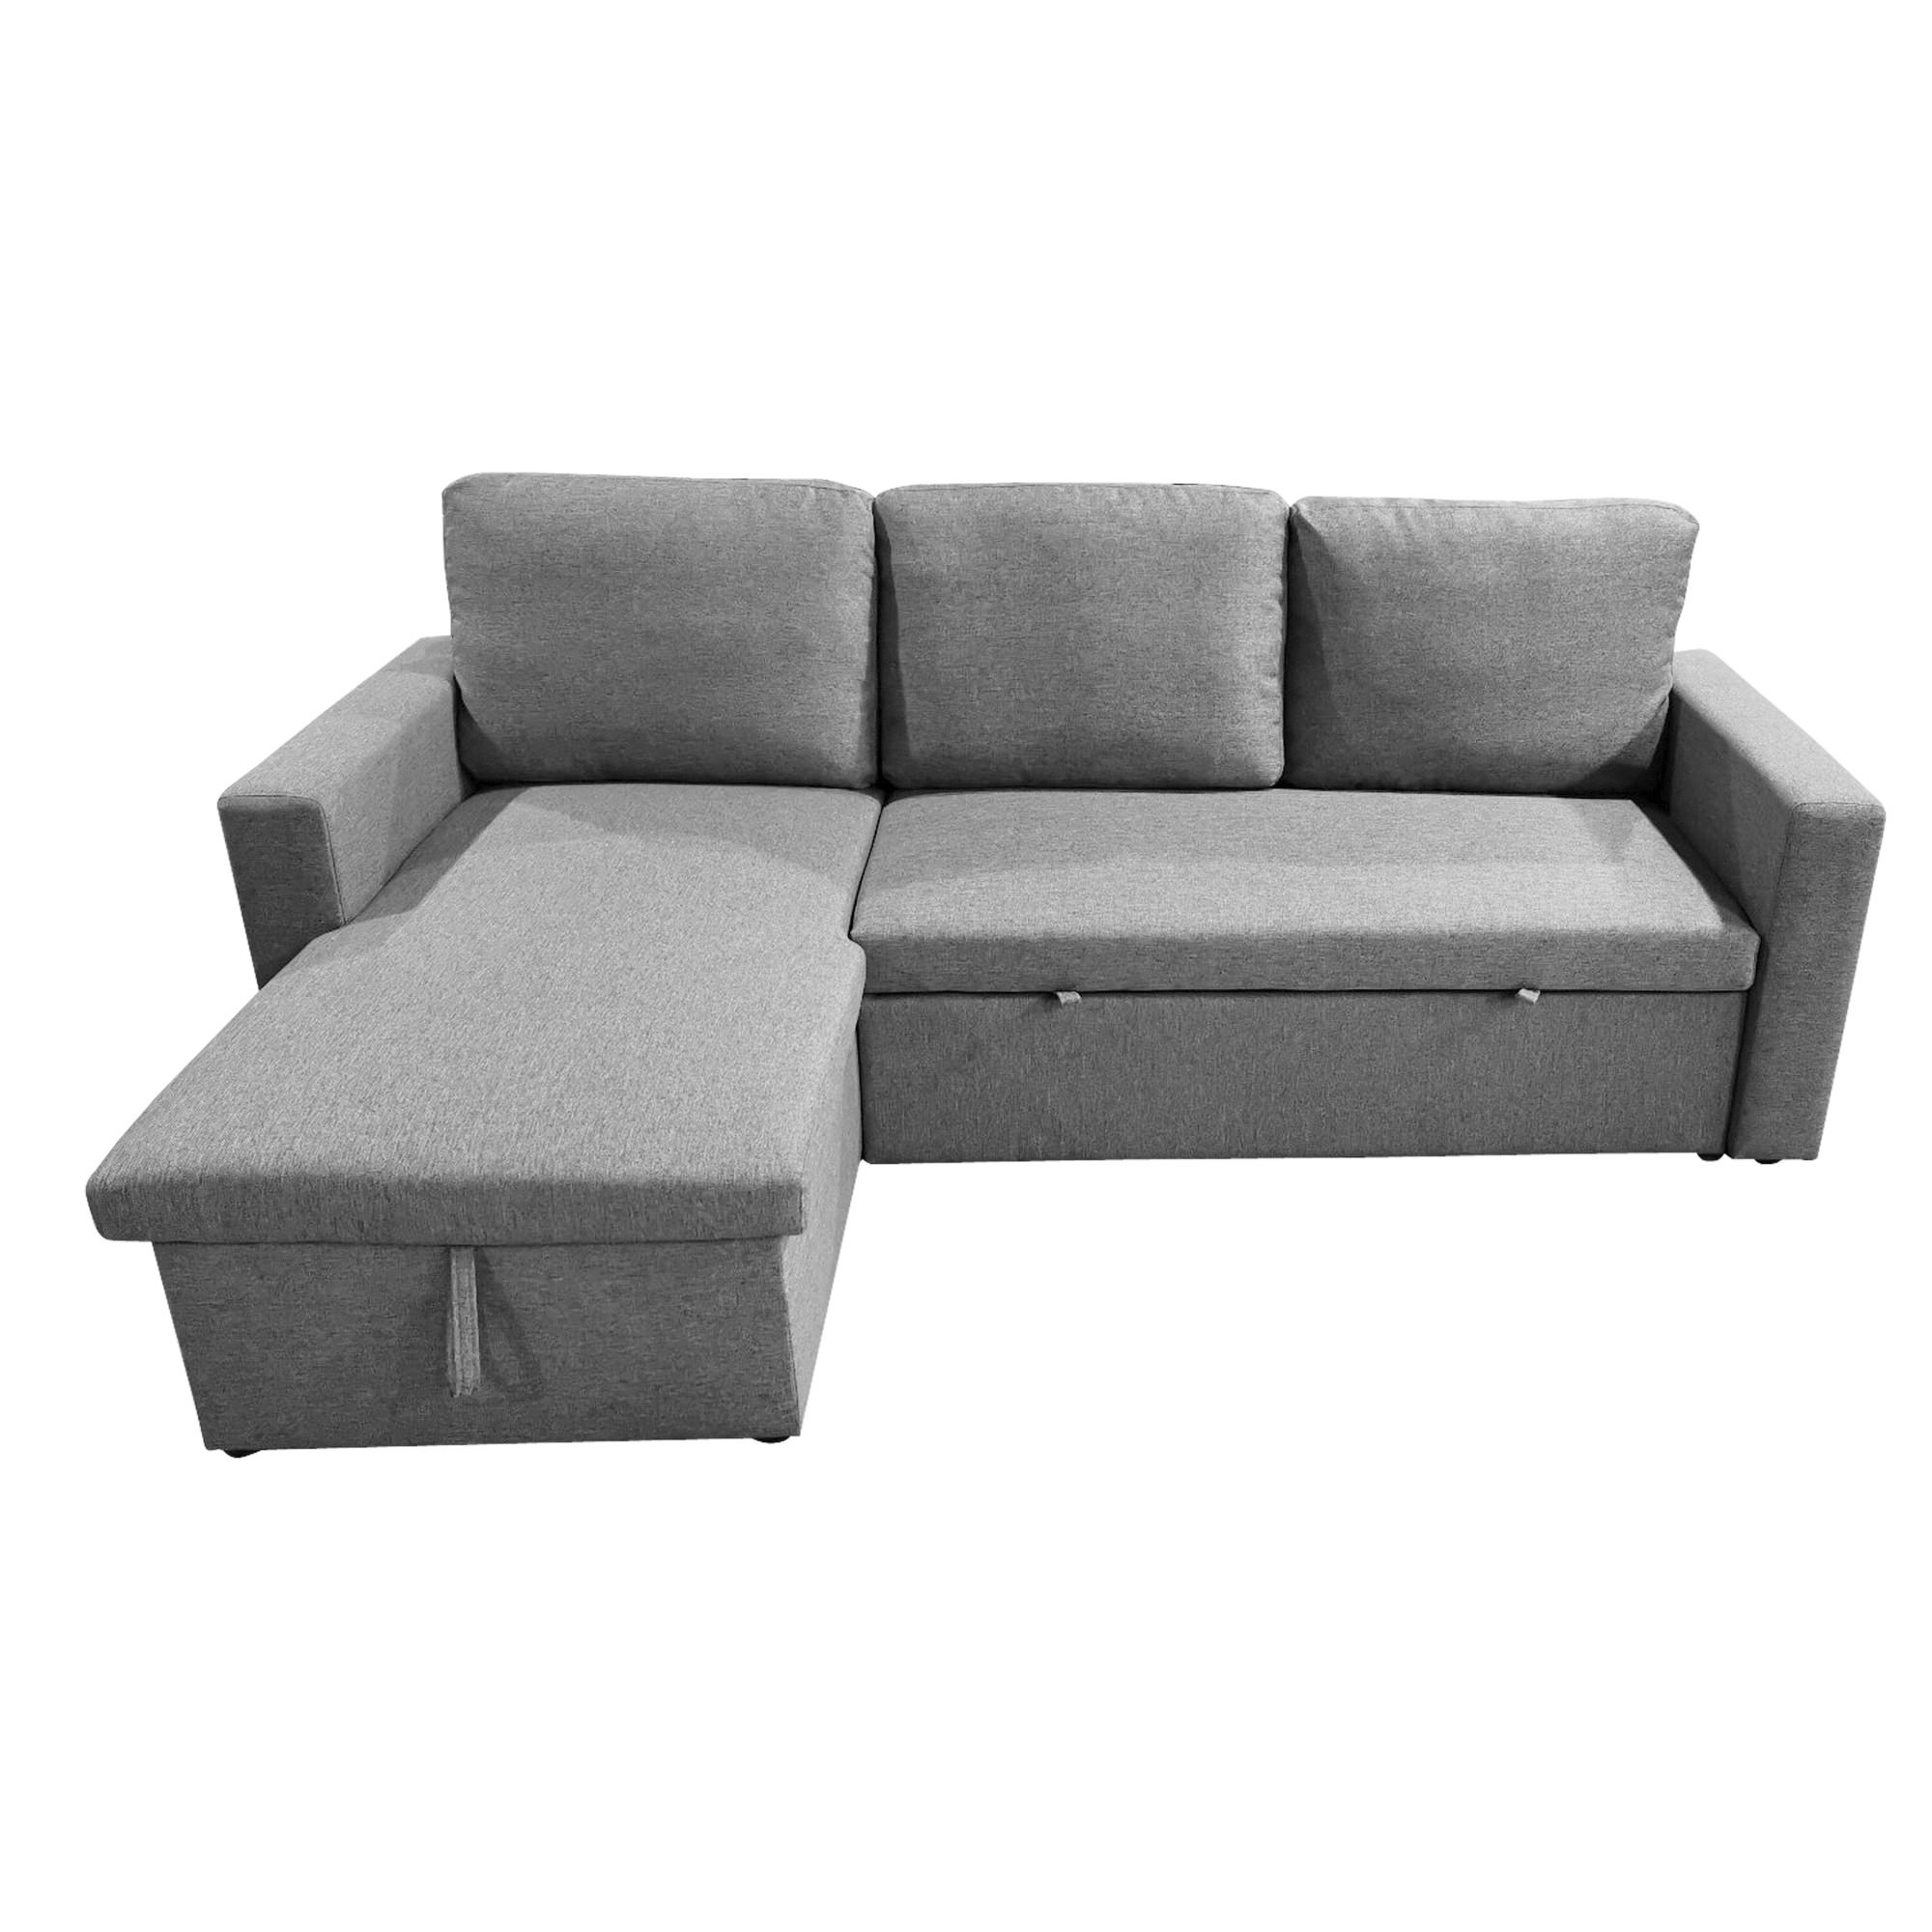 Picture of: Miera Fabric Reversable Corner Sofa Bed 2 Seater